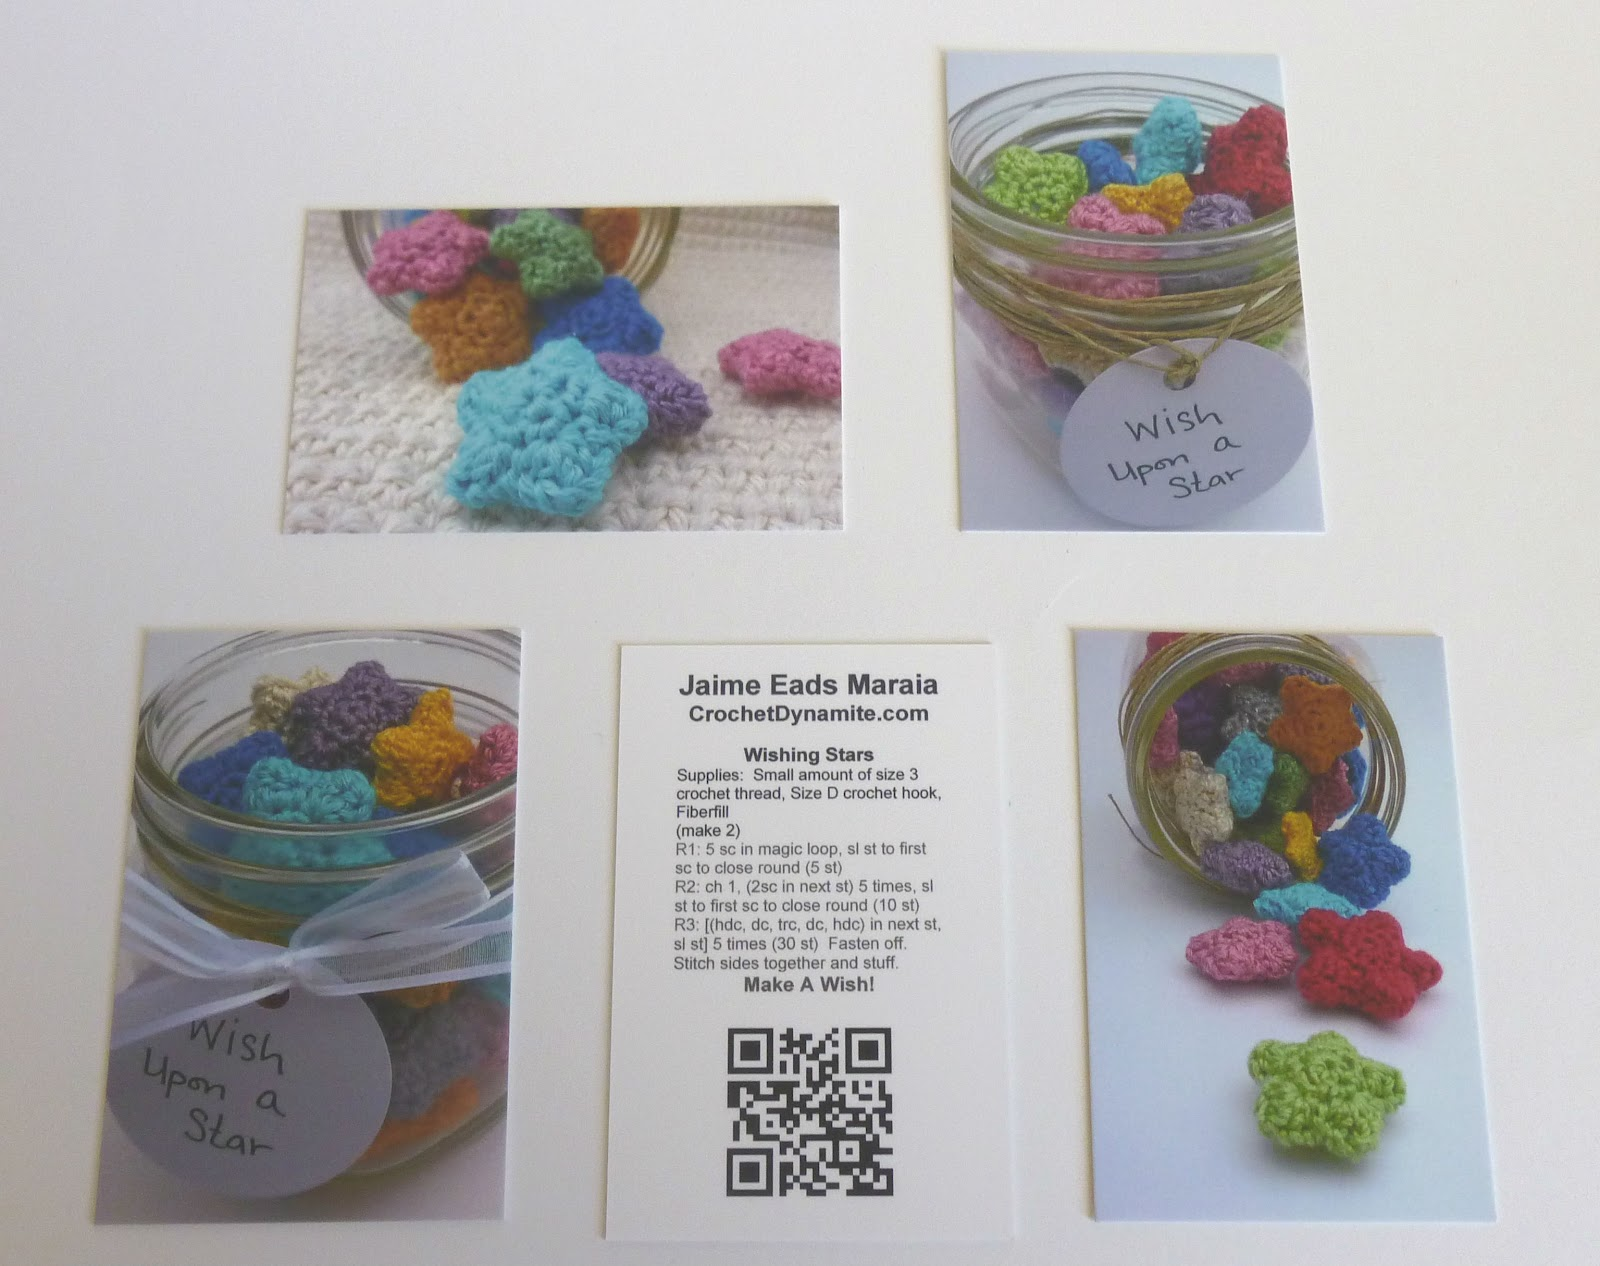 crochet dynamite a giveaway and my new cards